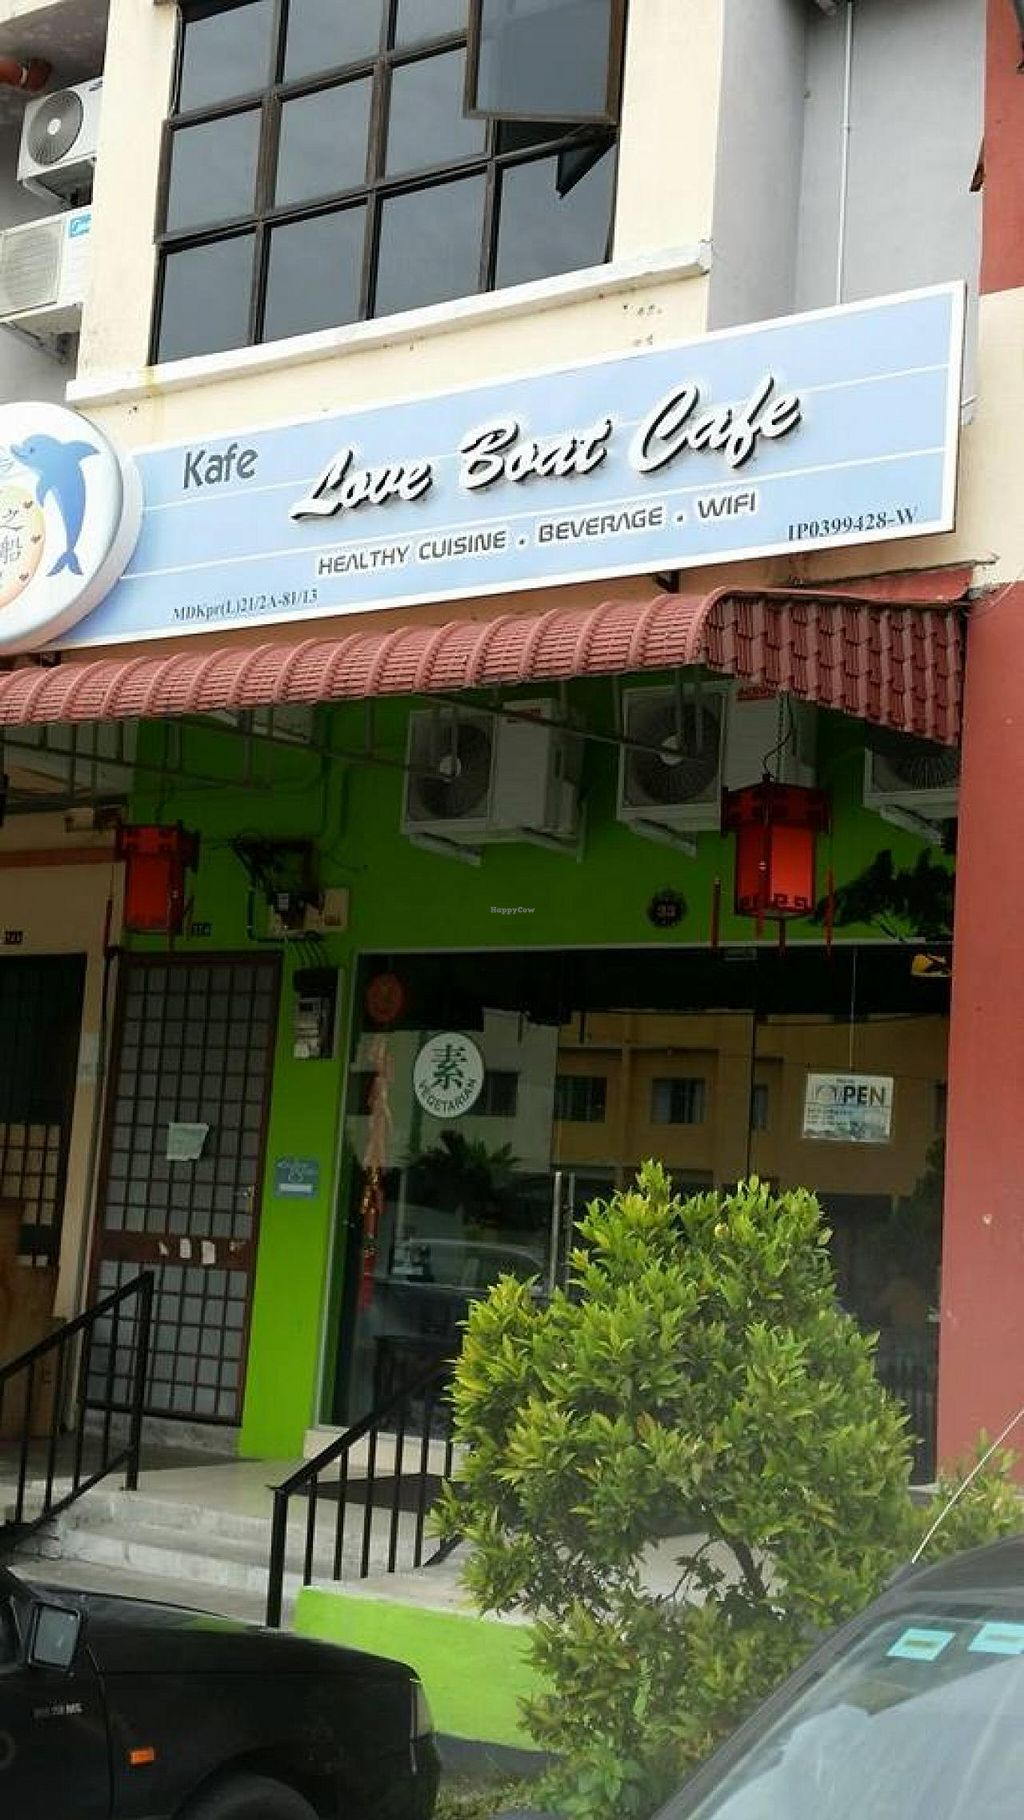 """Photo of Love Boat Cafe  by <a href=""""/members/profile/walter007"""">walter007</a> <br/>shop <br/> December 4, 2014  - <a href='/contact/abuse/image/53299/87173'>Report</a>"""